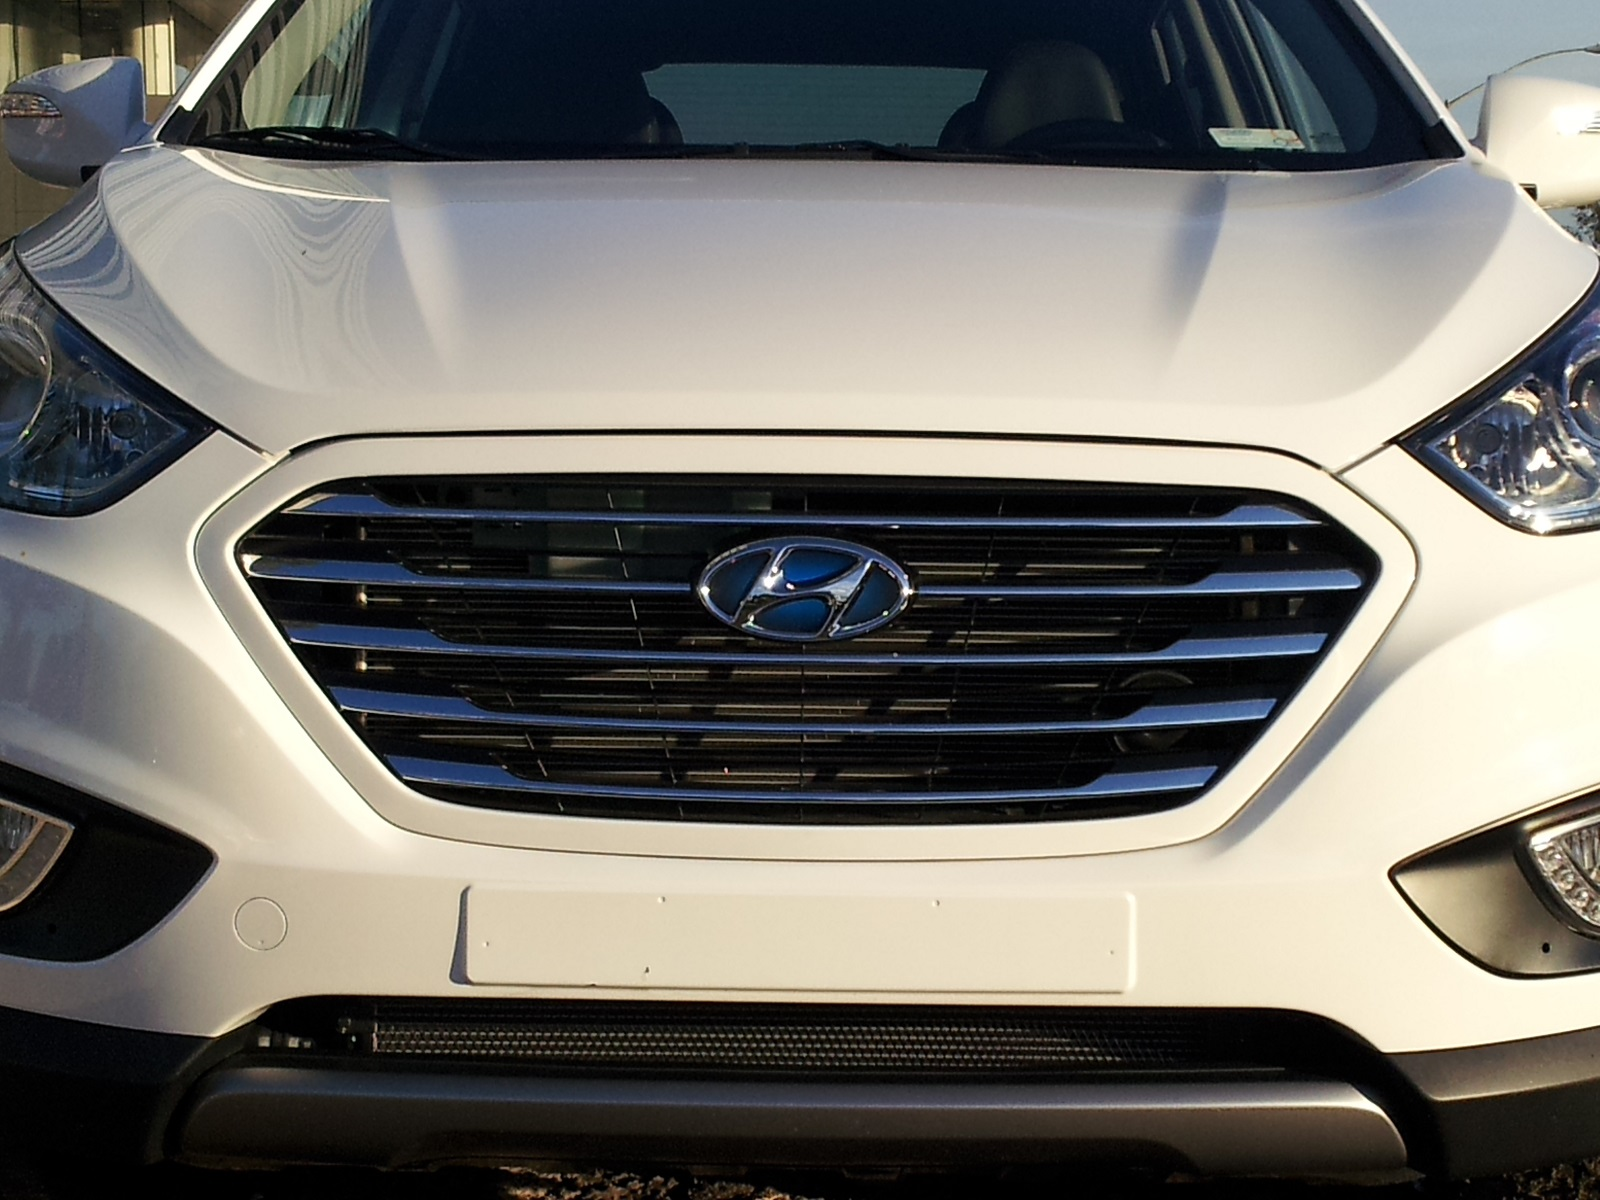 Volvo Xc60 Hybrid >> Hyundai To Launch 400-Mile Fuel-Cell SUV By 2020: Report